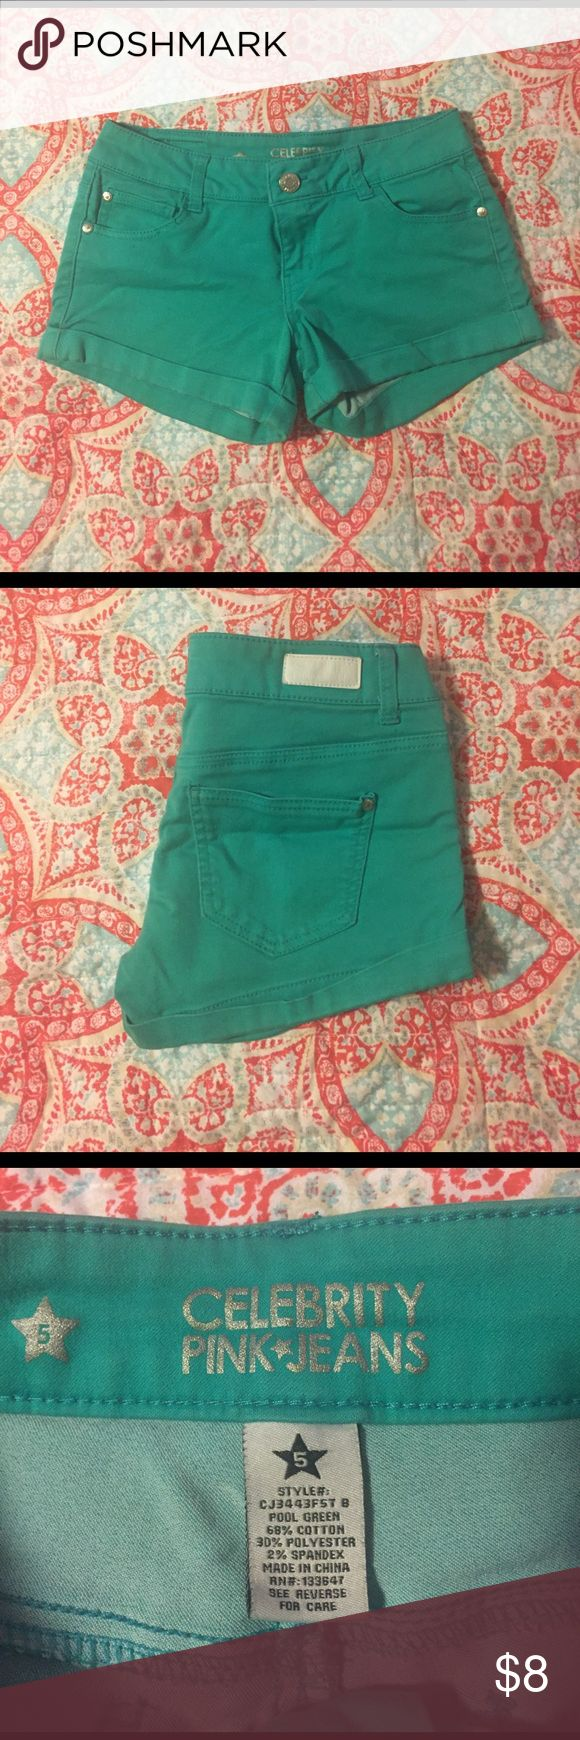 Celebrity Pink Shorts-Teal Very Soft Celebrity Pink Teal Shorts. Size 5. Only worn a couple times. Celebrity Pink Shorts